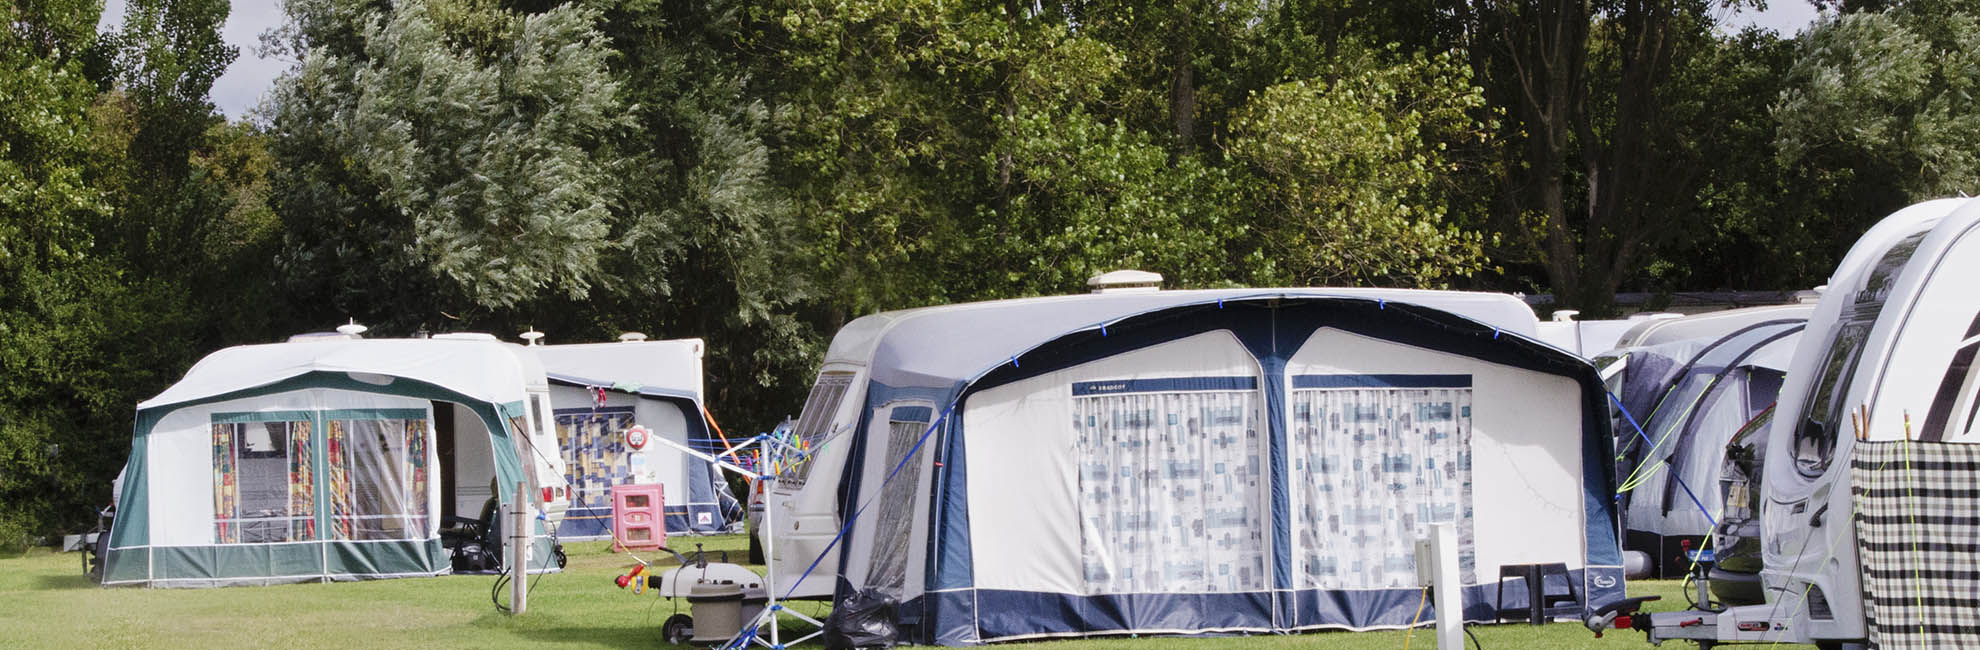 Caravans and awnings at a Parkdean Resorts campsite in Essex